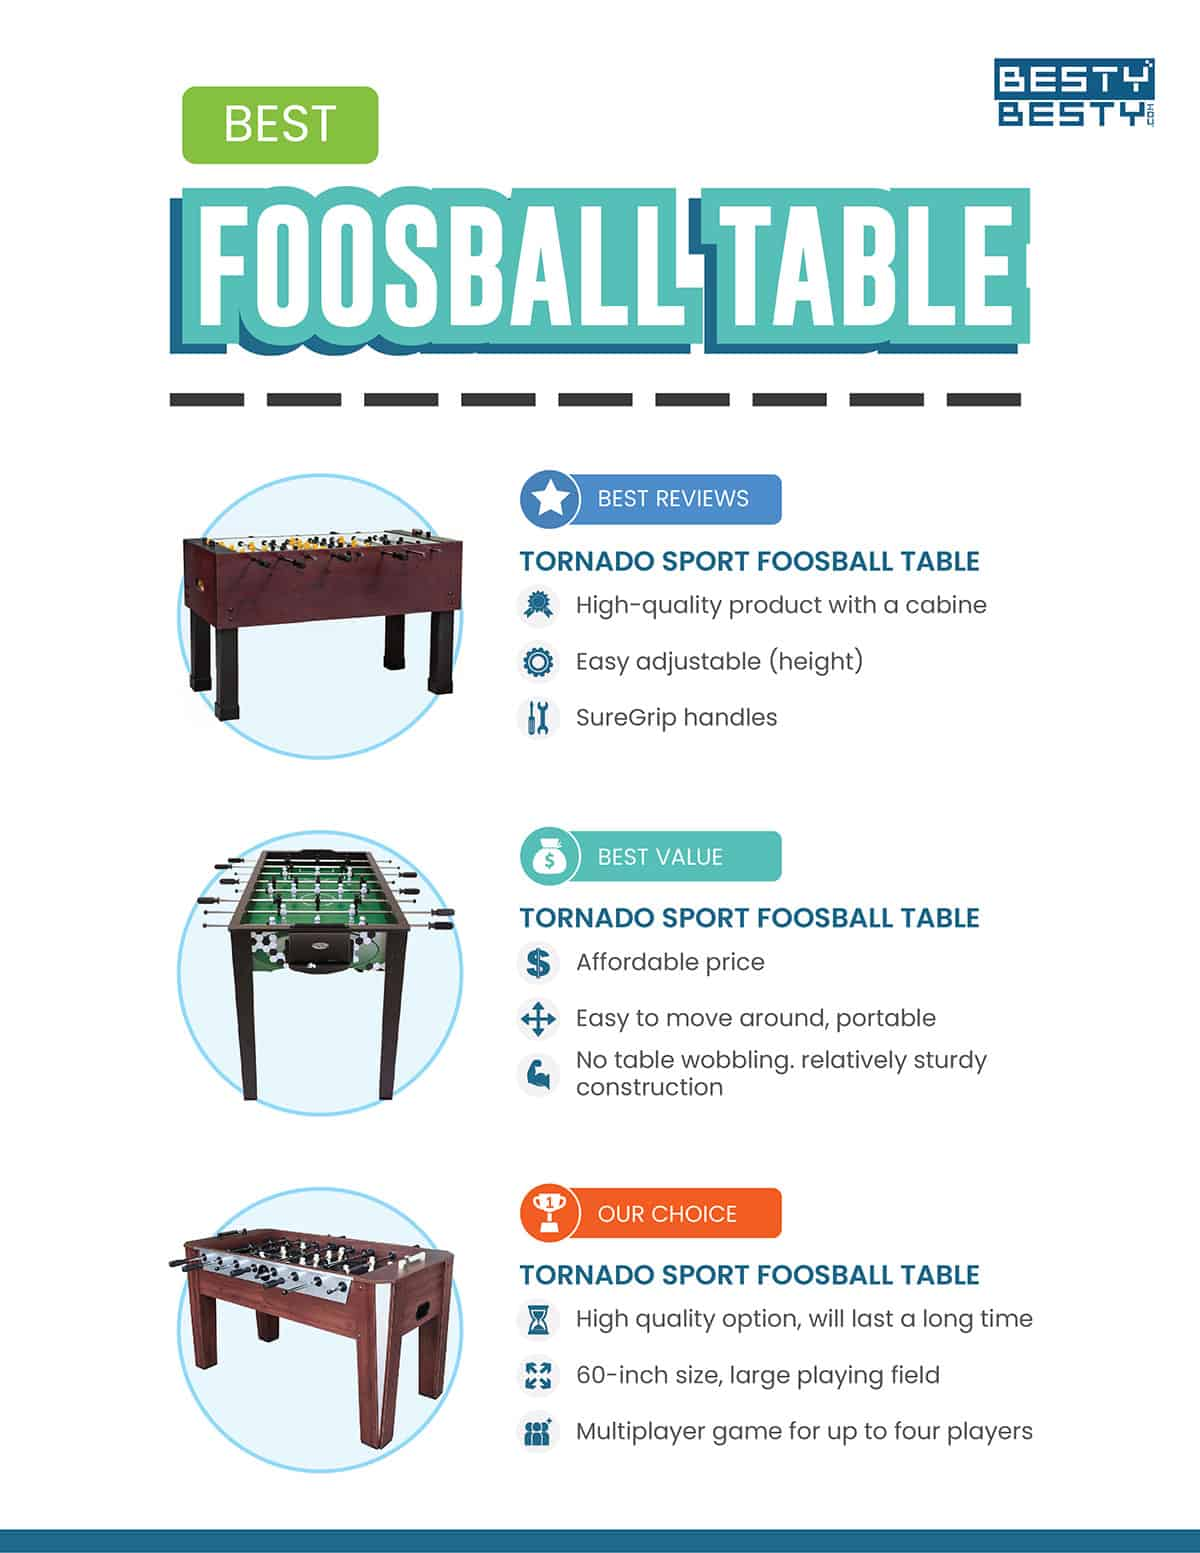 Best Foosball Table infographic by bestybesty.com